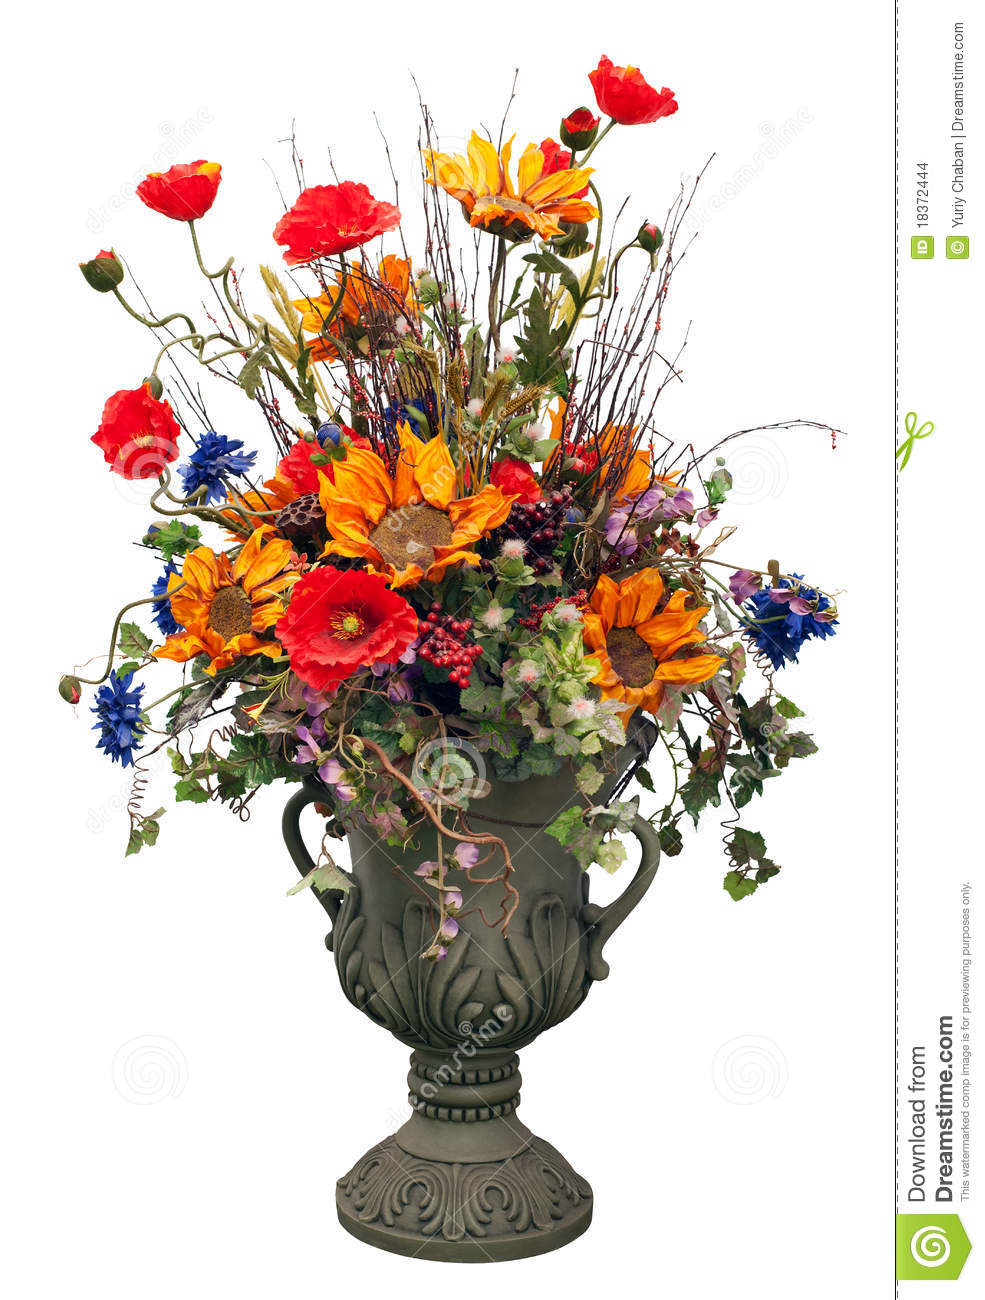 Flowers In Vase Stock Images - Image: 18372444